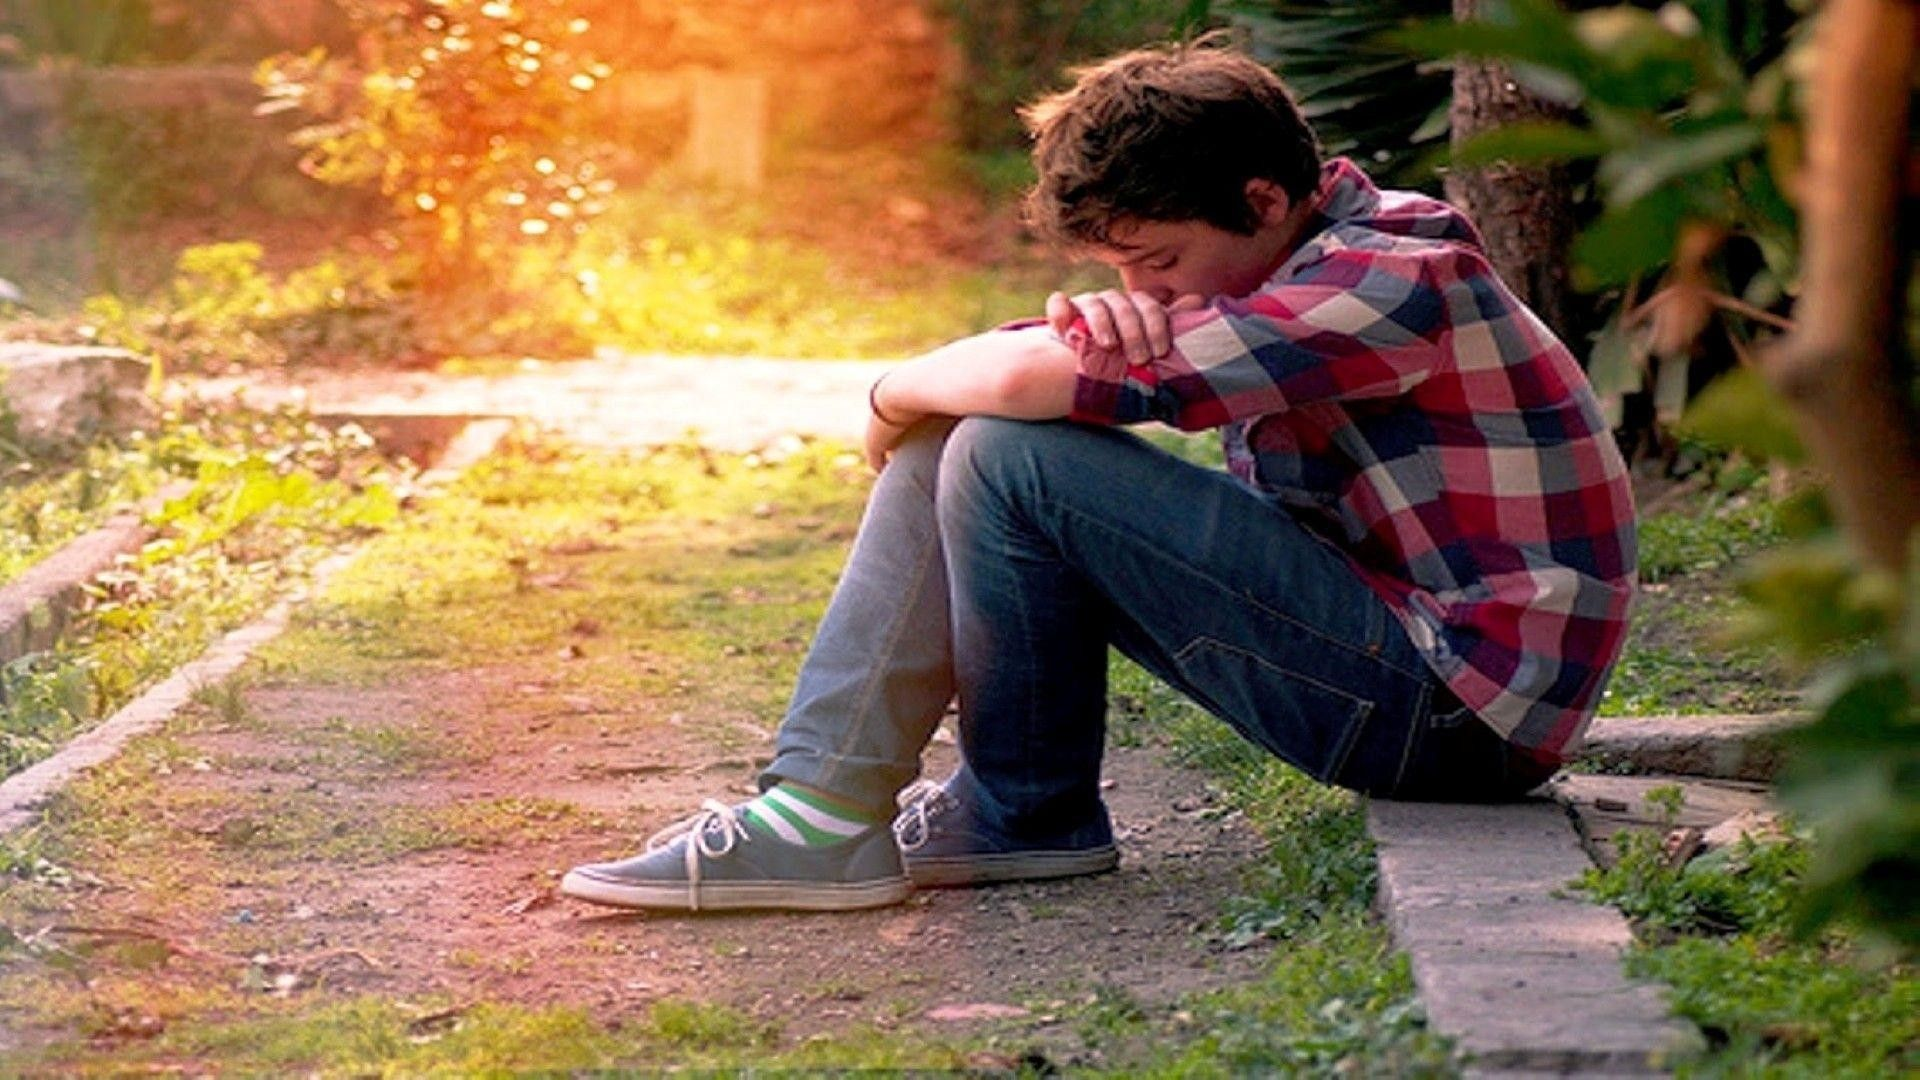 Spectacular Cool Sad Boy Hd Wallpaper With Resolution Best